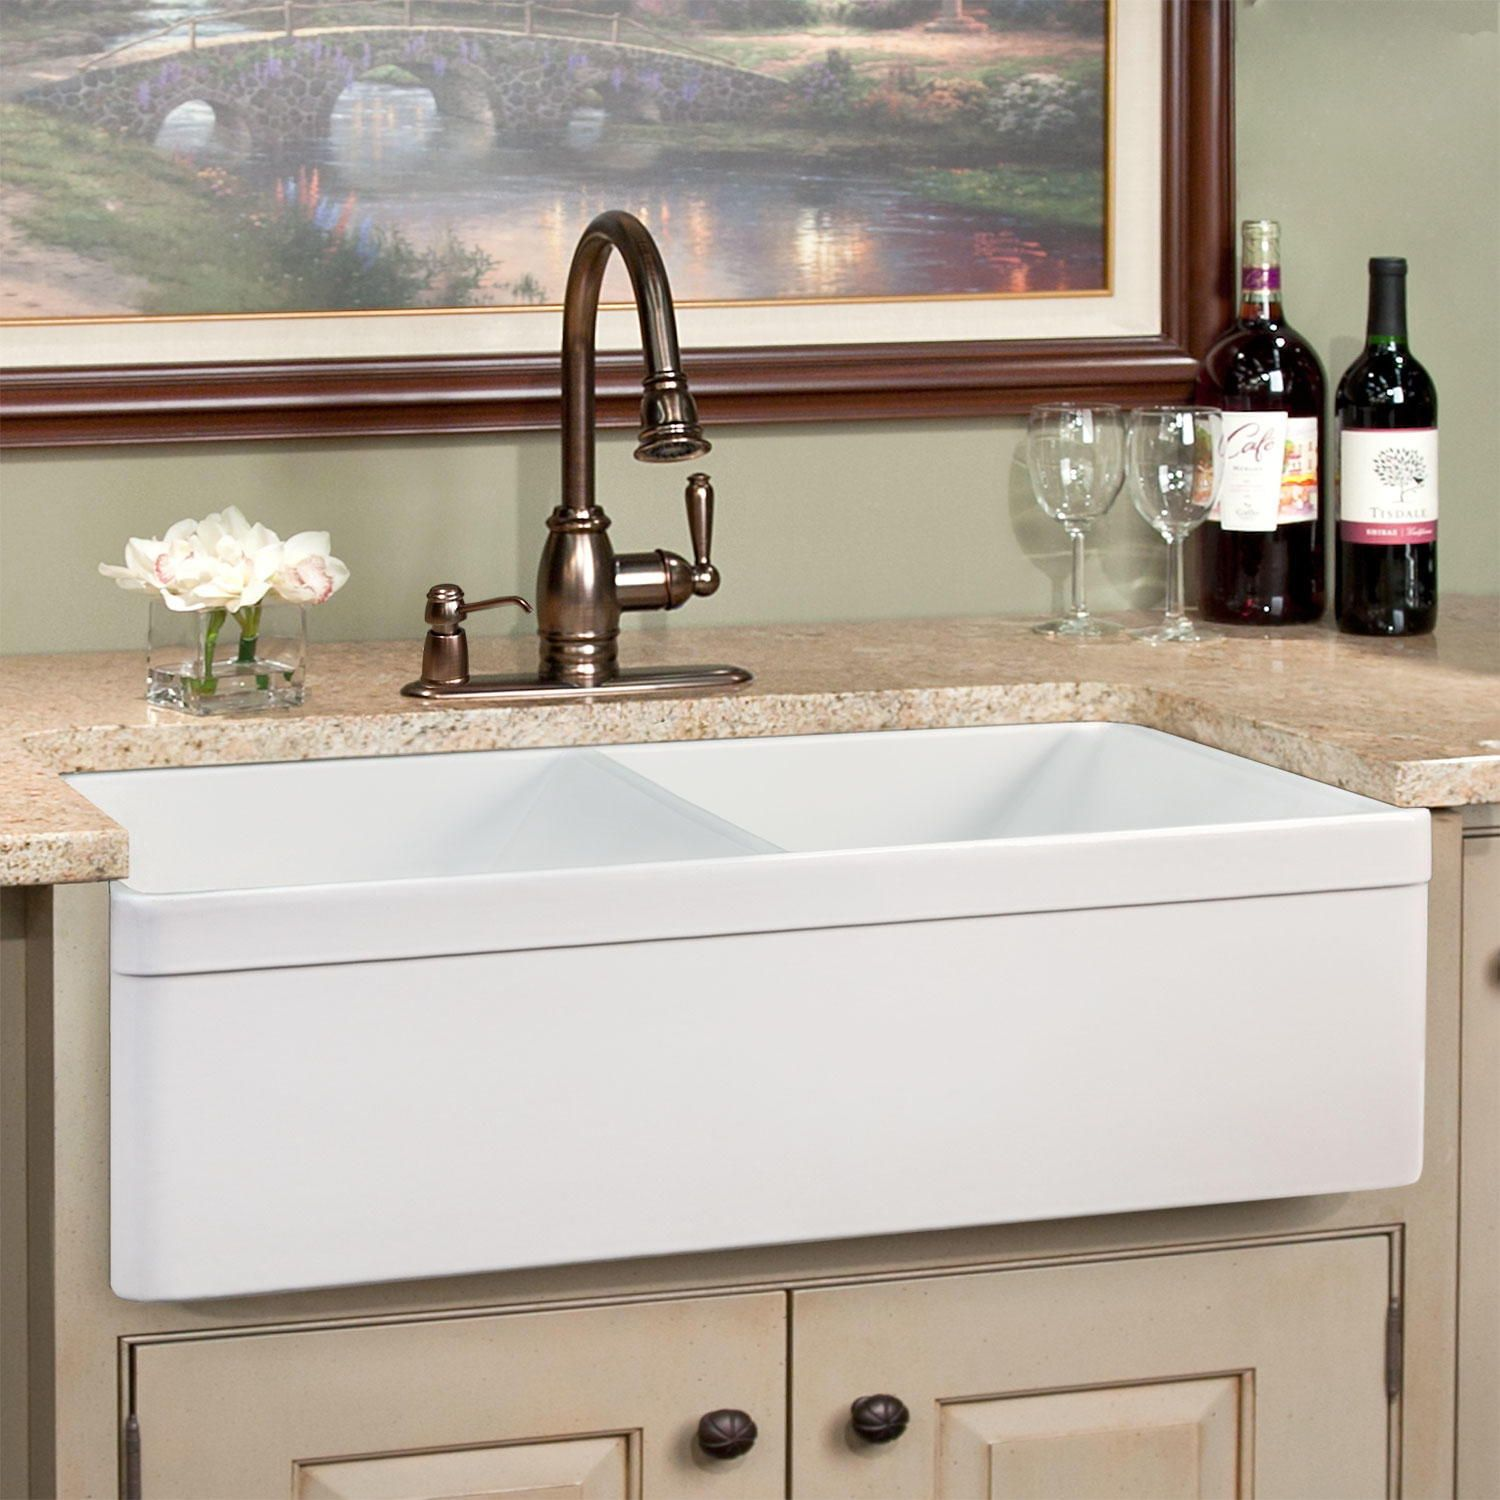 Double Farmhouse Sinks Double Apron Front Sinks Farmhouse Sink